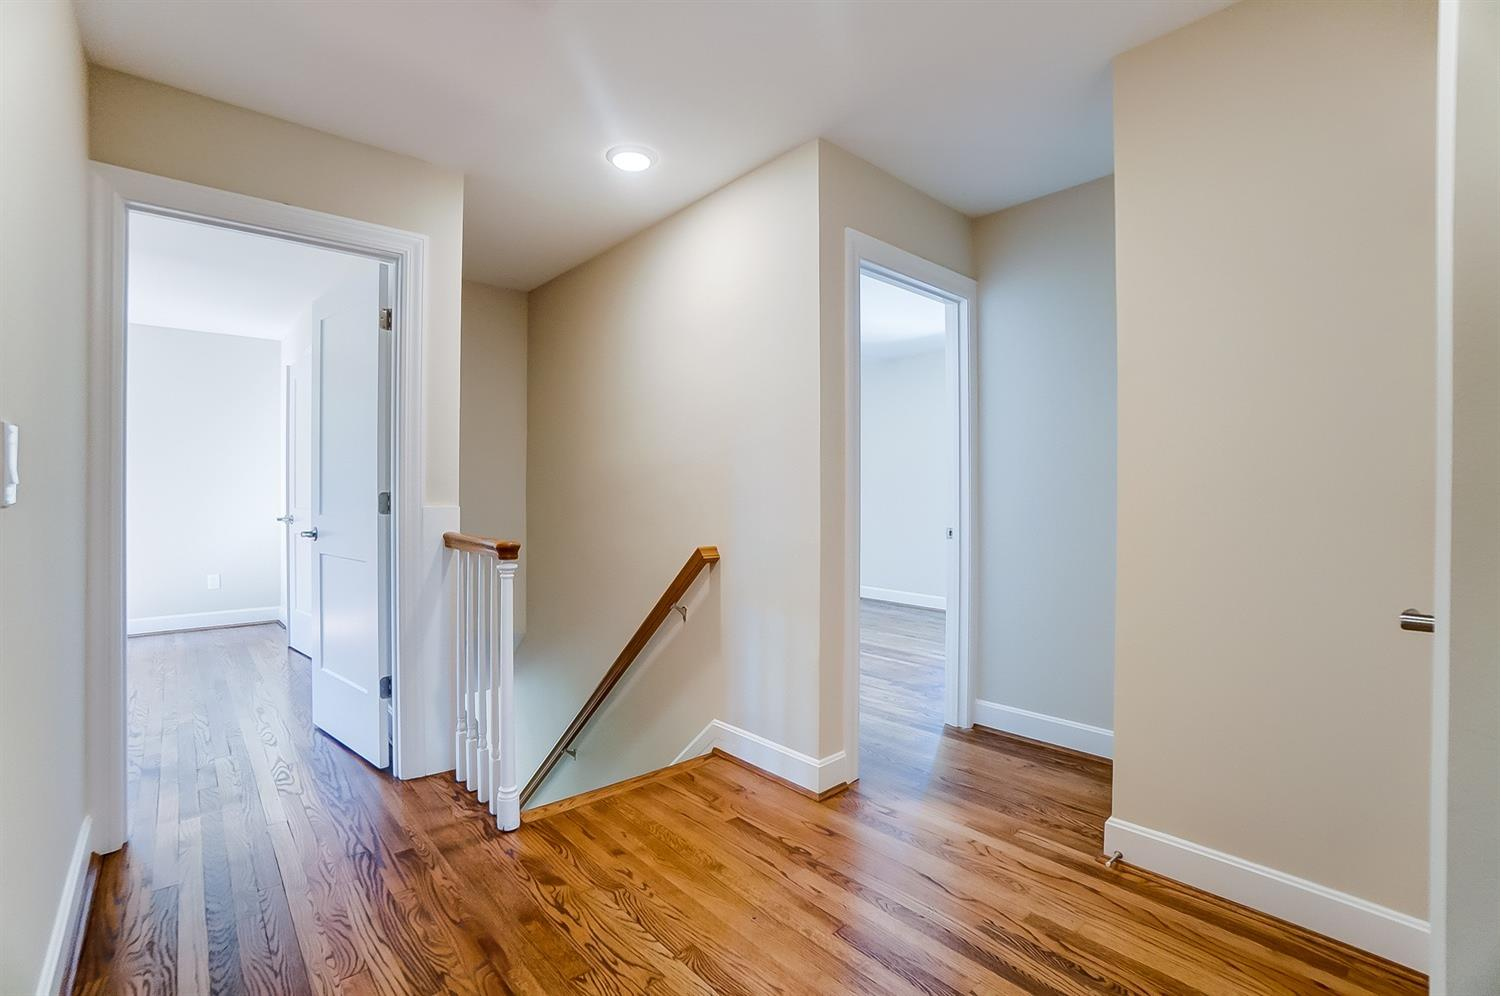 2nd floor hallway is generously sized and offers opportunity for a seating area. Gleaming hardwood floors and LED lighting give this area lots of open, light and airy feeling. Hallway closet handle seen to right. Front bedroom with ensuite bath is at left, two more bedrooms to right have shared bath.